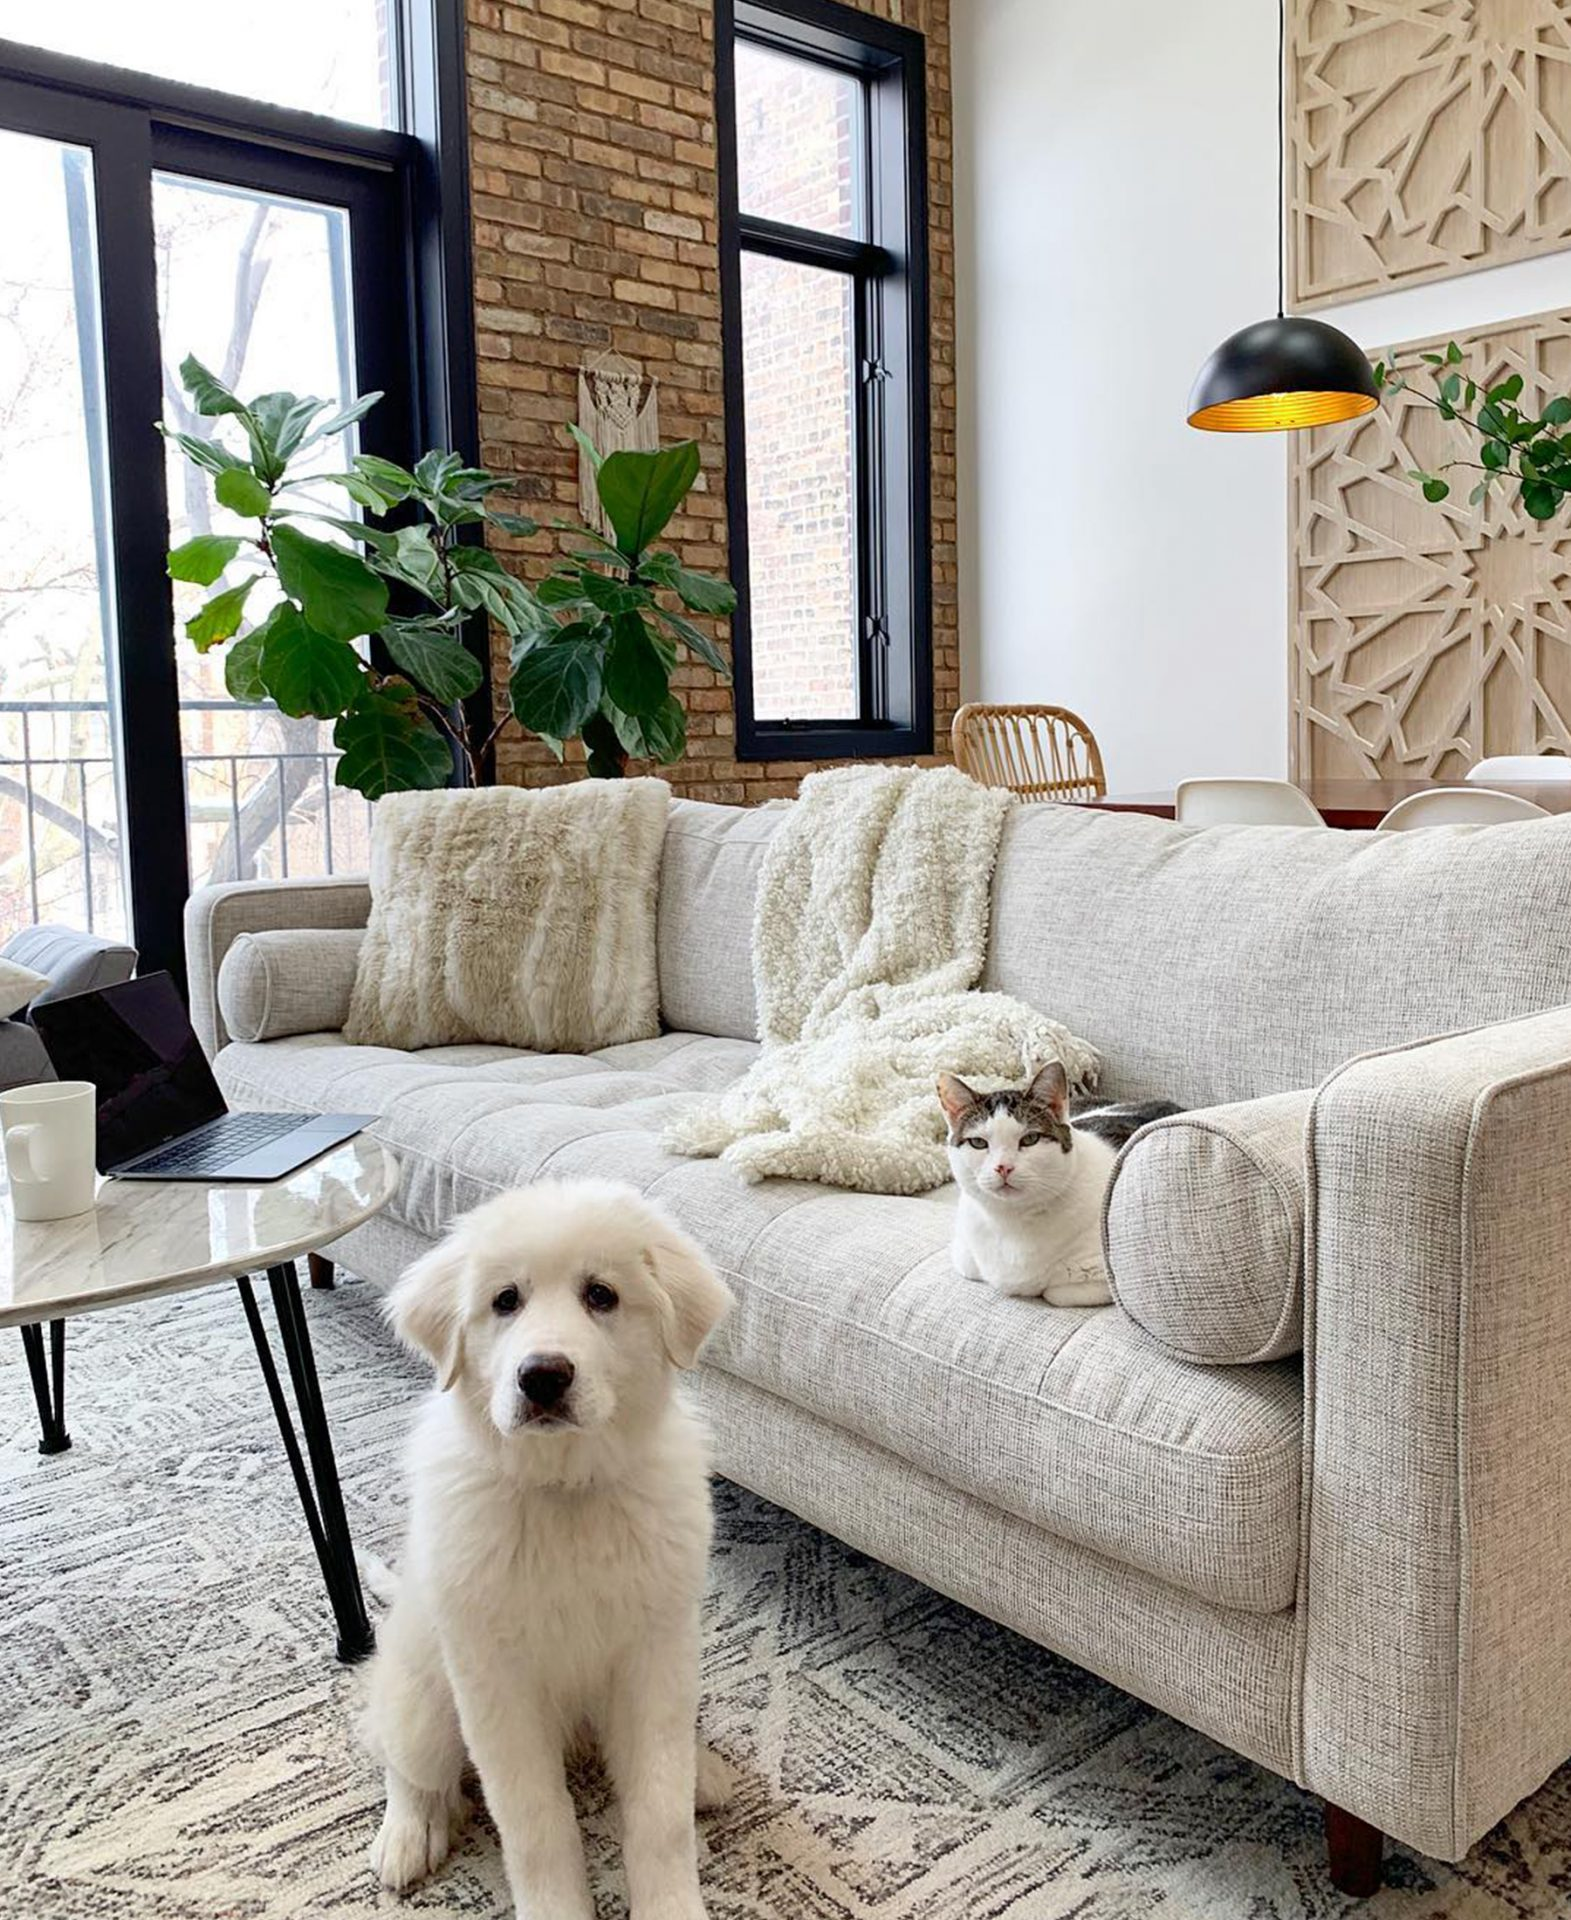 Michelle Sturgis' puppy and cat look innocent next to the Article Sven sofa in Birch Ivory